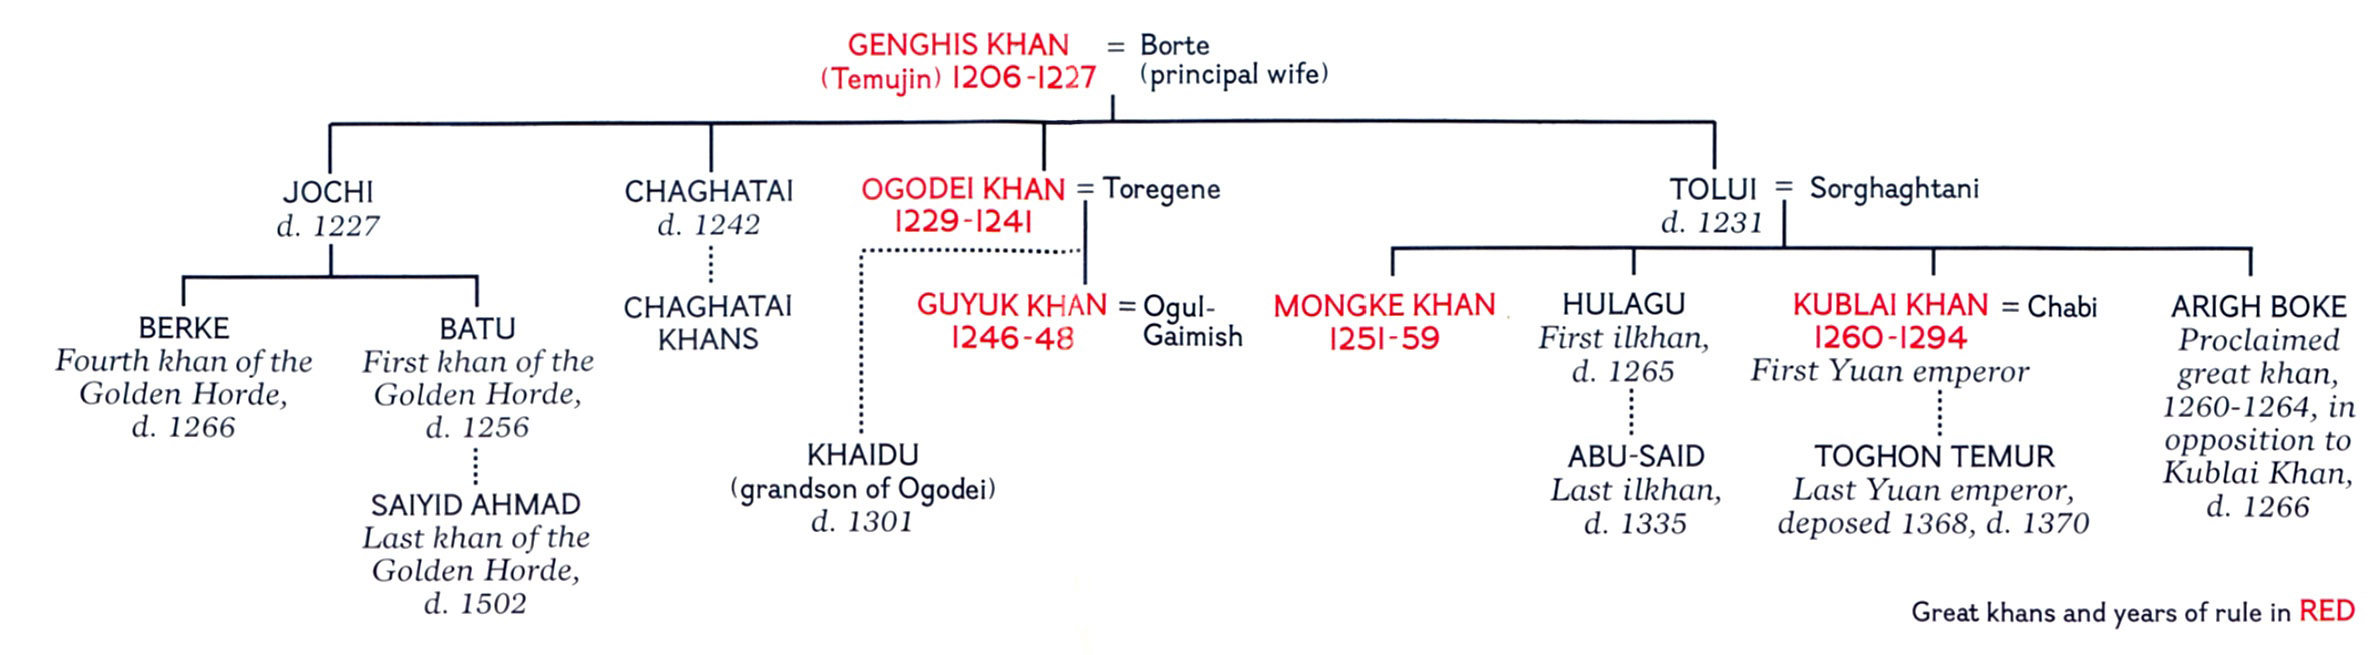 proving genghis khan to be the greatest ruler Genghis khan (c1167-1227) was the founder and emperor of the mongol empire during the 13th century he was a military genius who created the largest and greatest land.